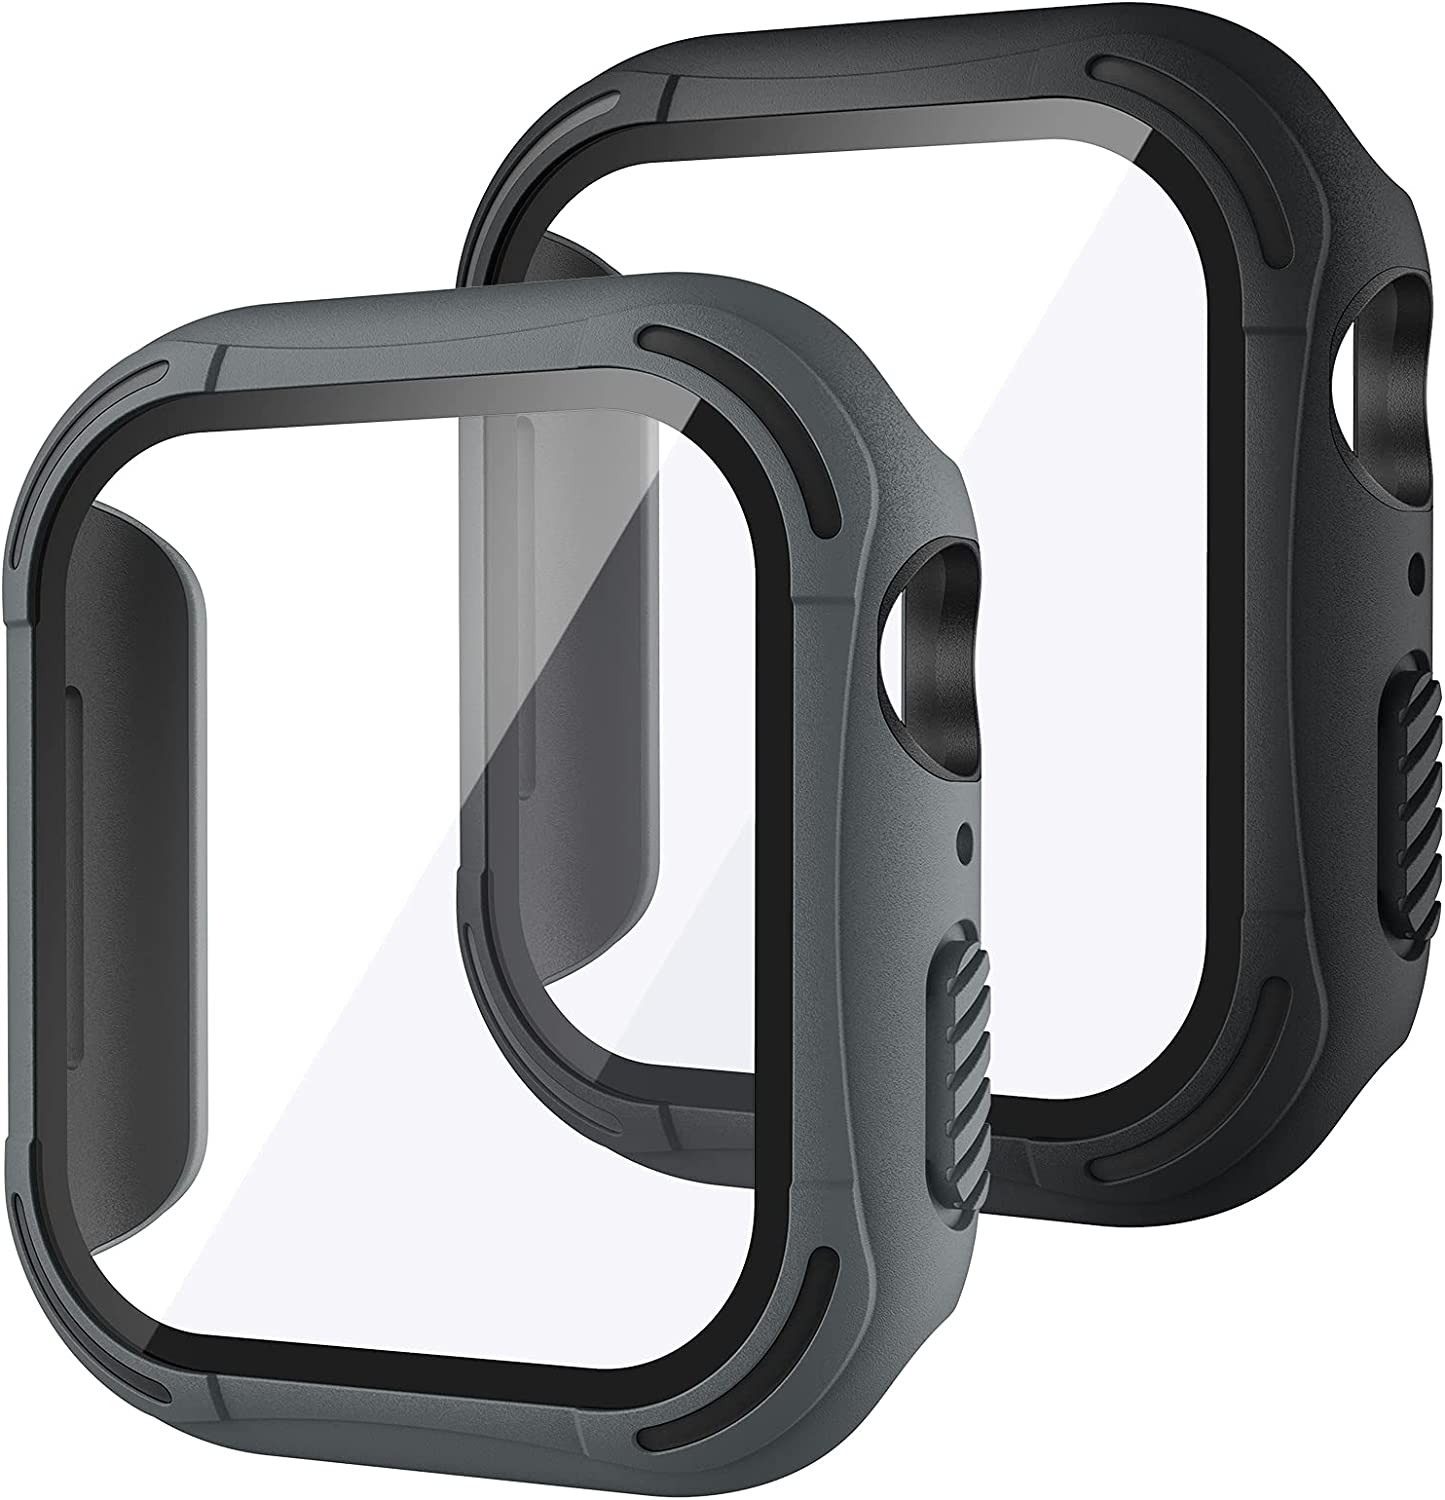 [2Pack] Tensea for Apple Watch Screen Protector Case SE Series 6 5 4 44mm 40mm Accessories, iWatch Protective PC Face Cover Built-in Tempered Glass Film, Rugged Bumper Case 44 40 mm Men (44mm)